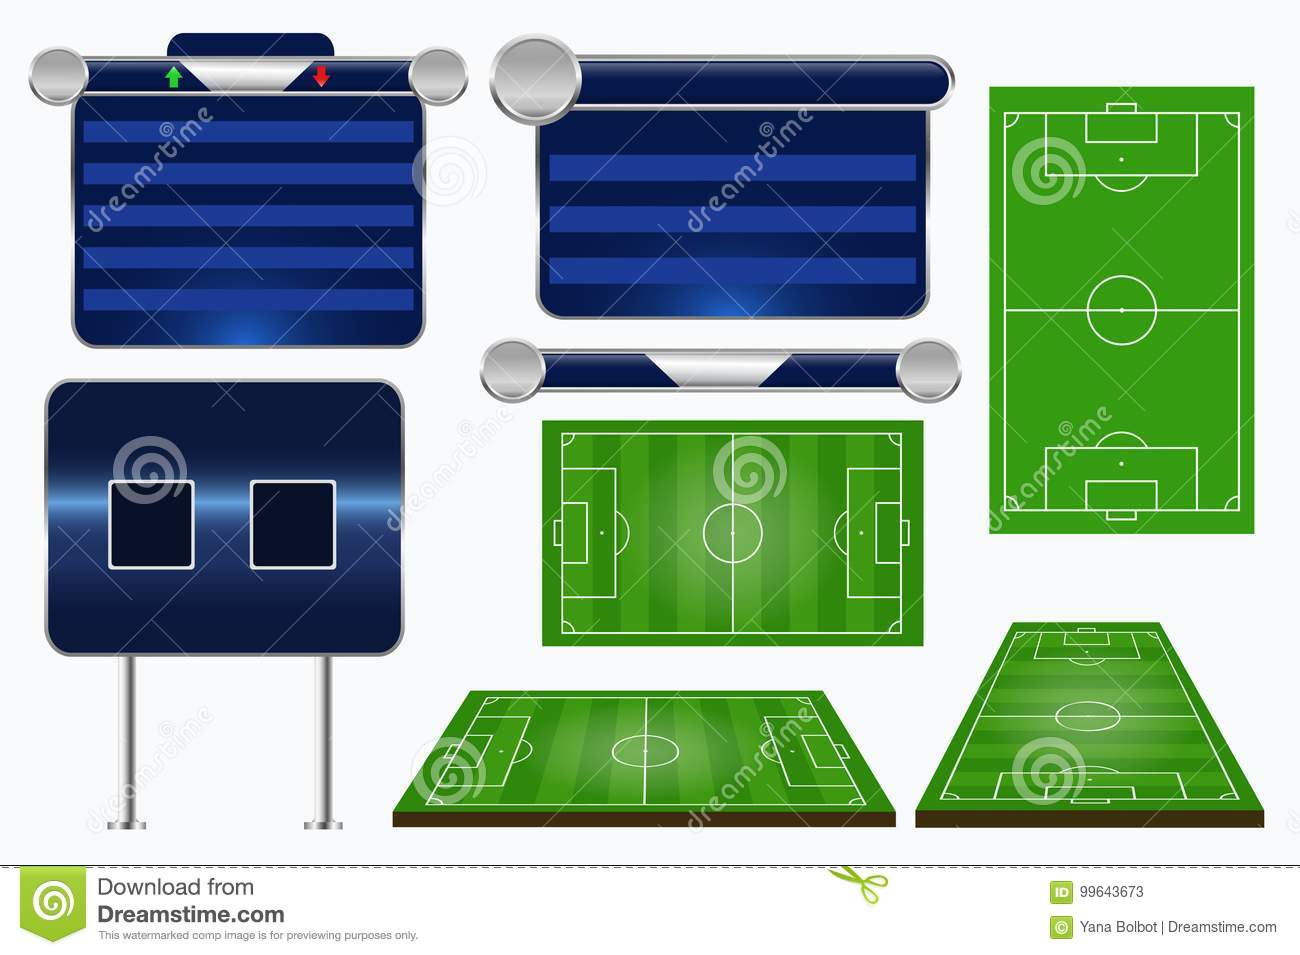 Broadcast Graphics For Sport Program Soccer Match Template